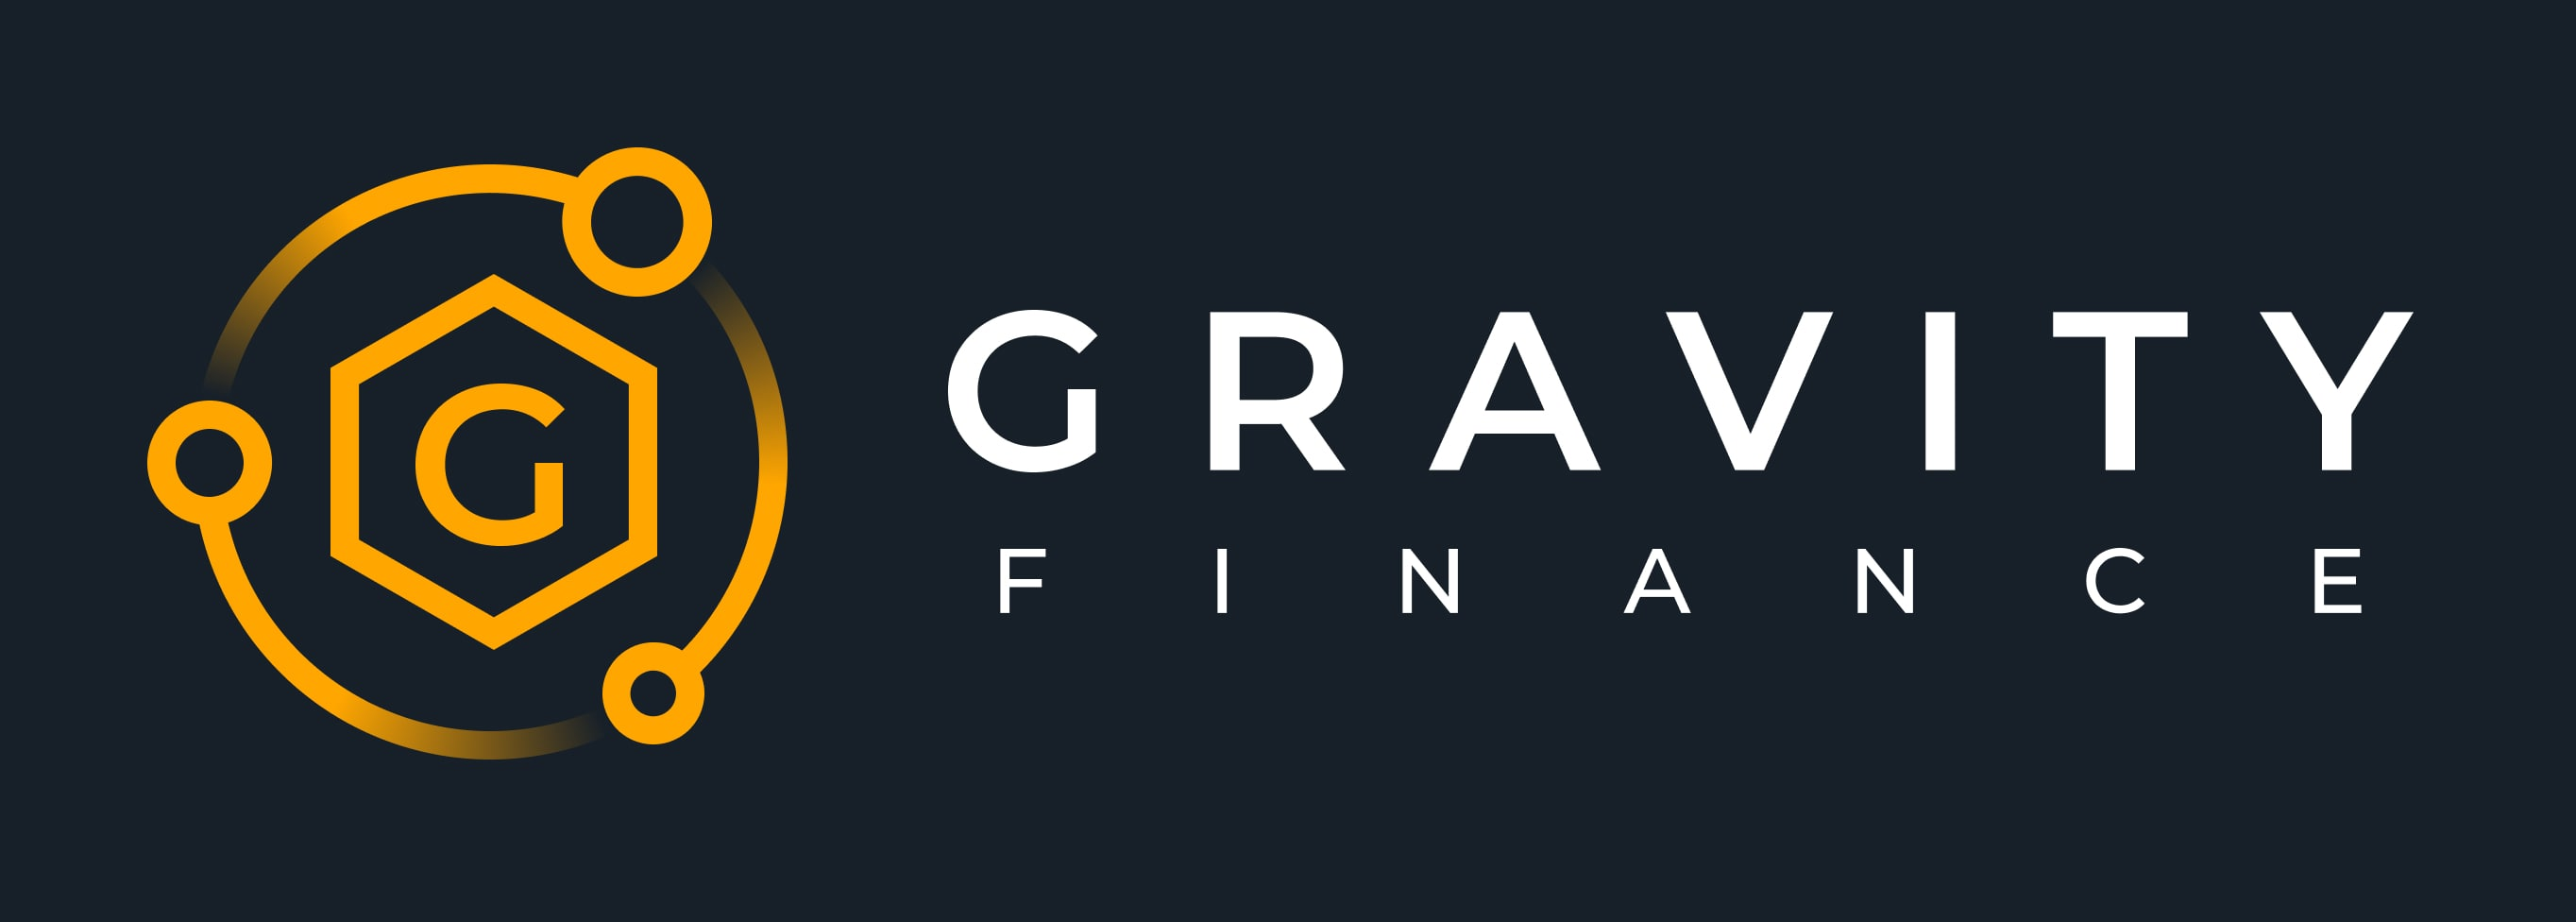 Gravity Finance 1st Public competition - 20 winners each receive 1000$GFI prelaunch Giveaway Image